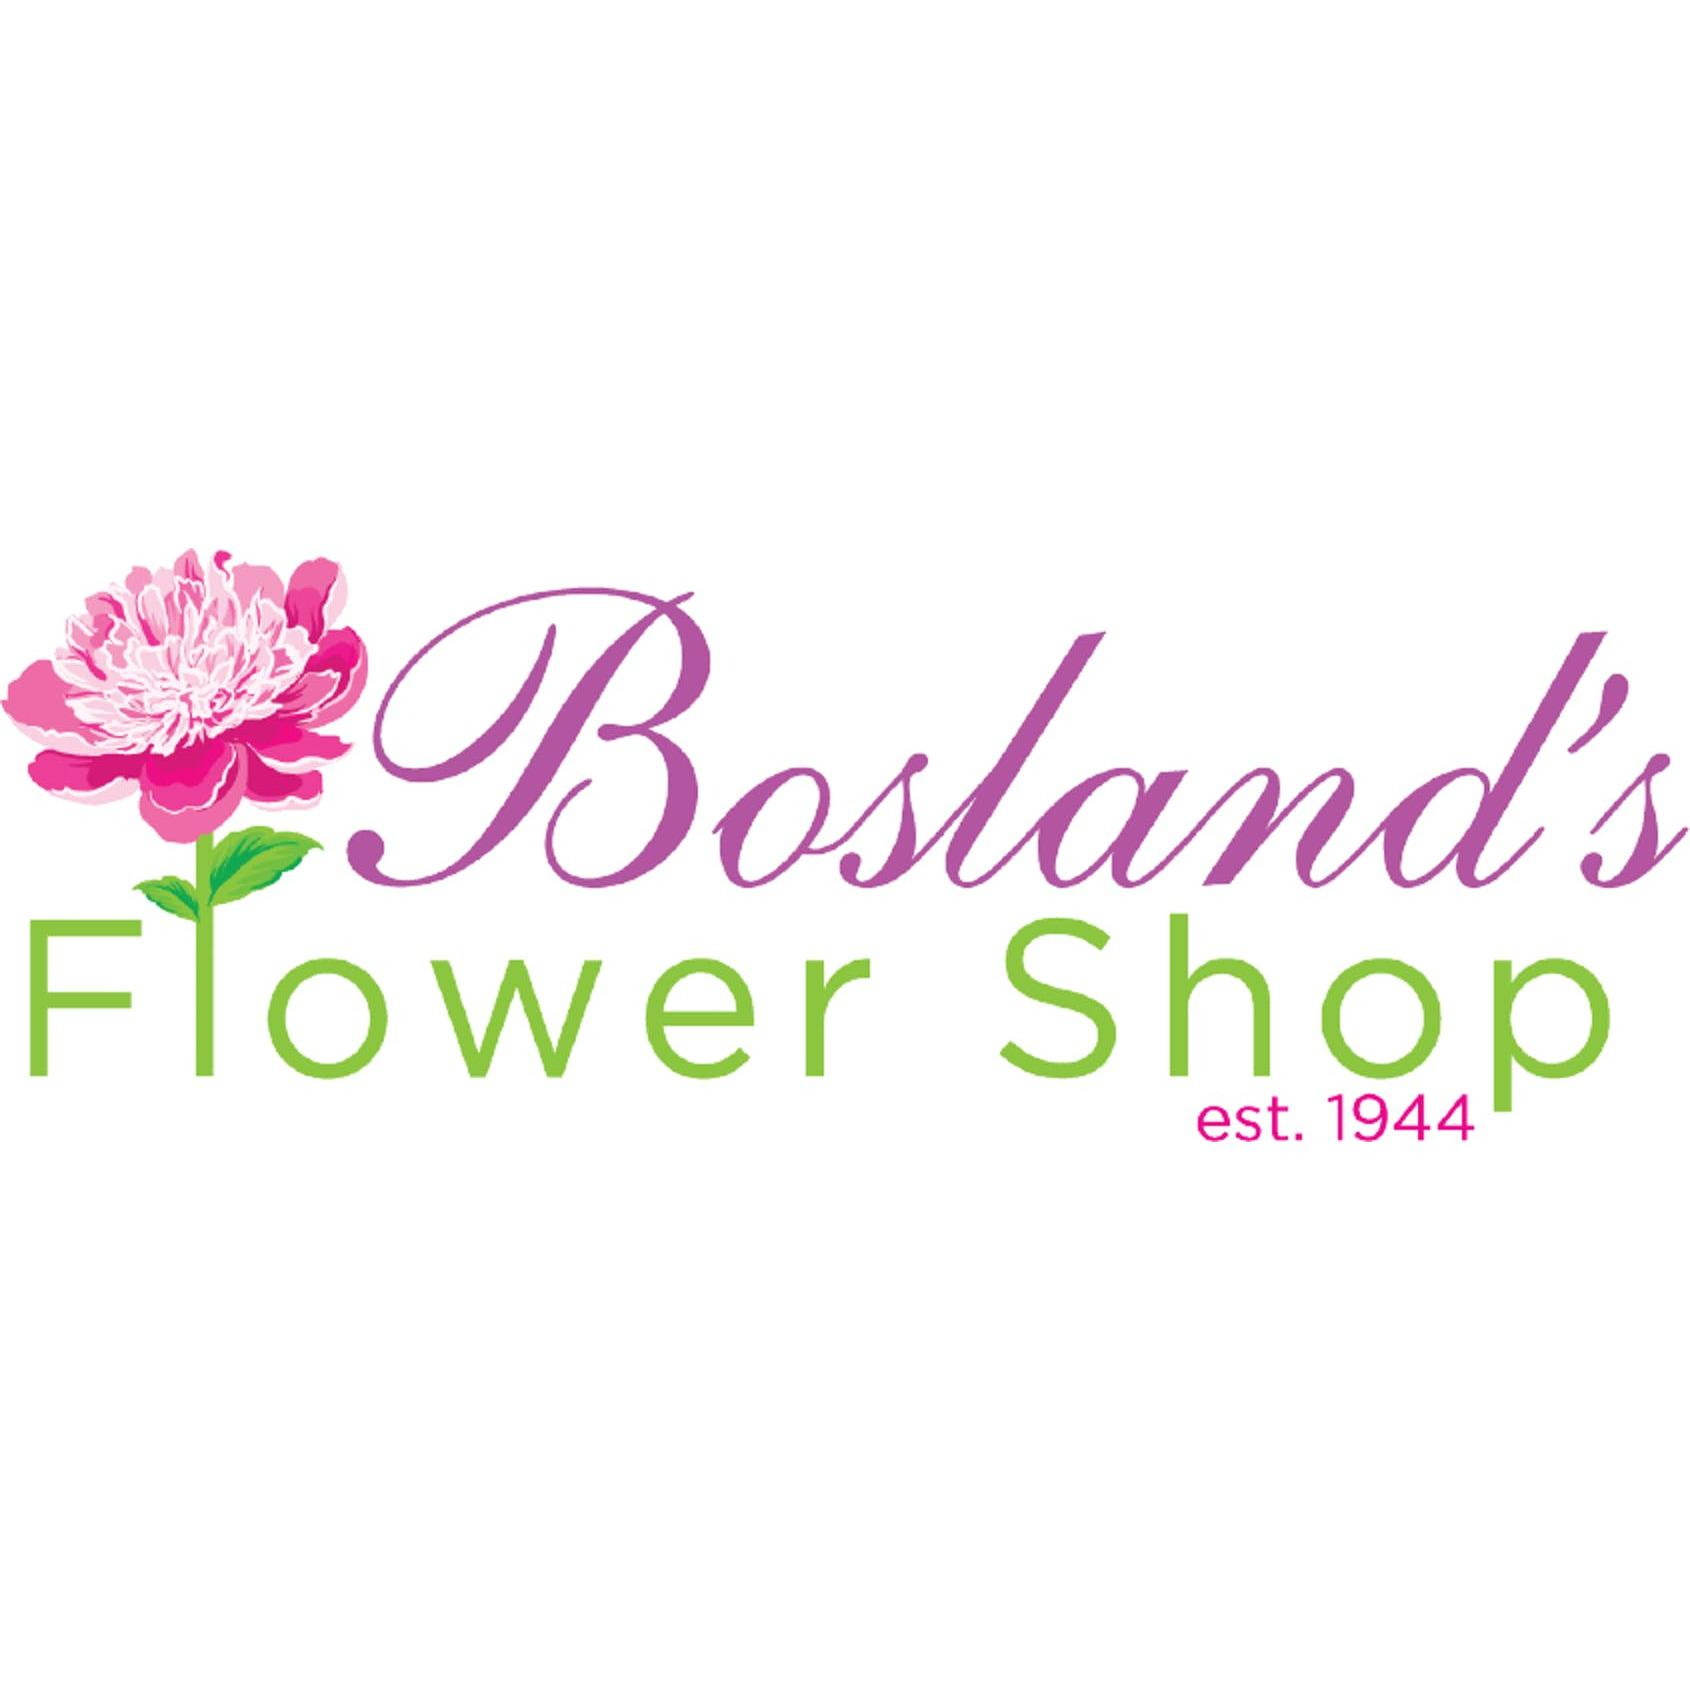 Bosland's Flower Shop proudly serves the community of Wayne, New Jersey with flowers, plants, and gifts.